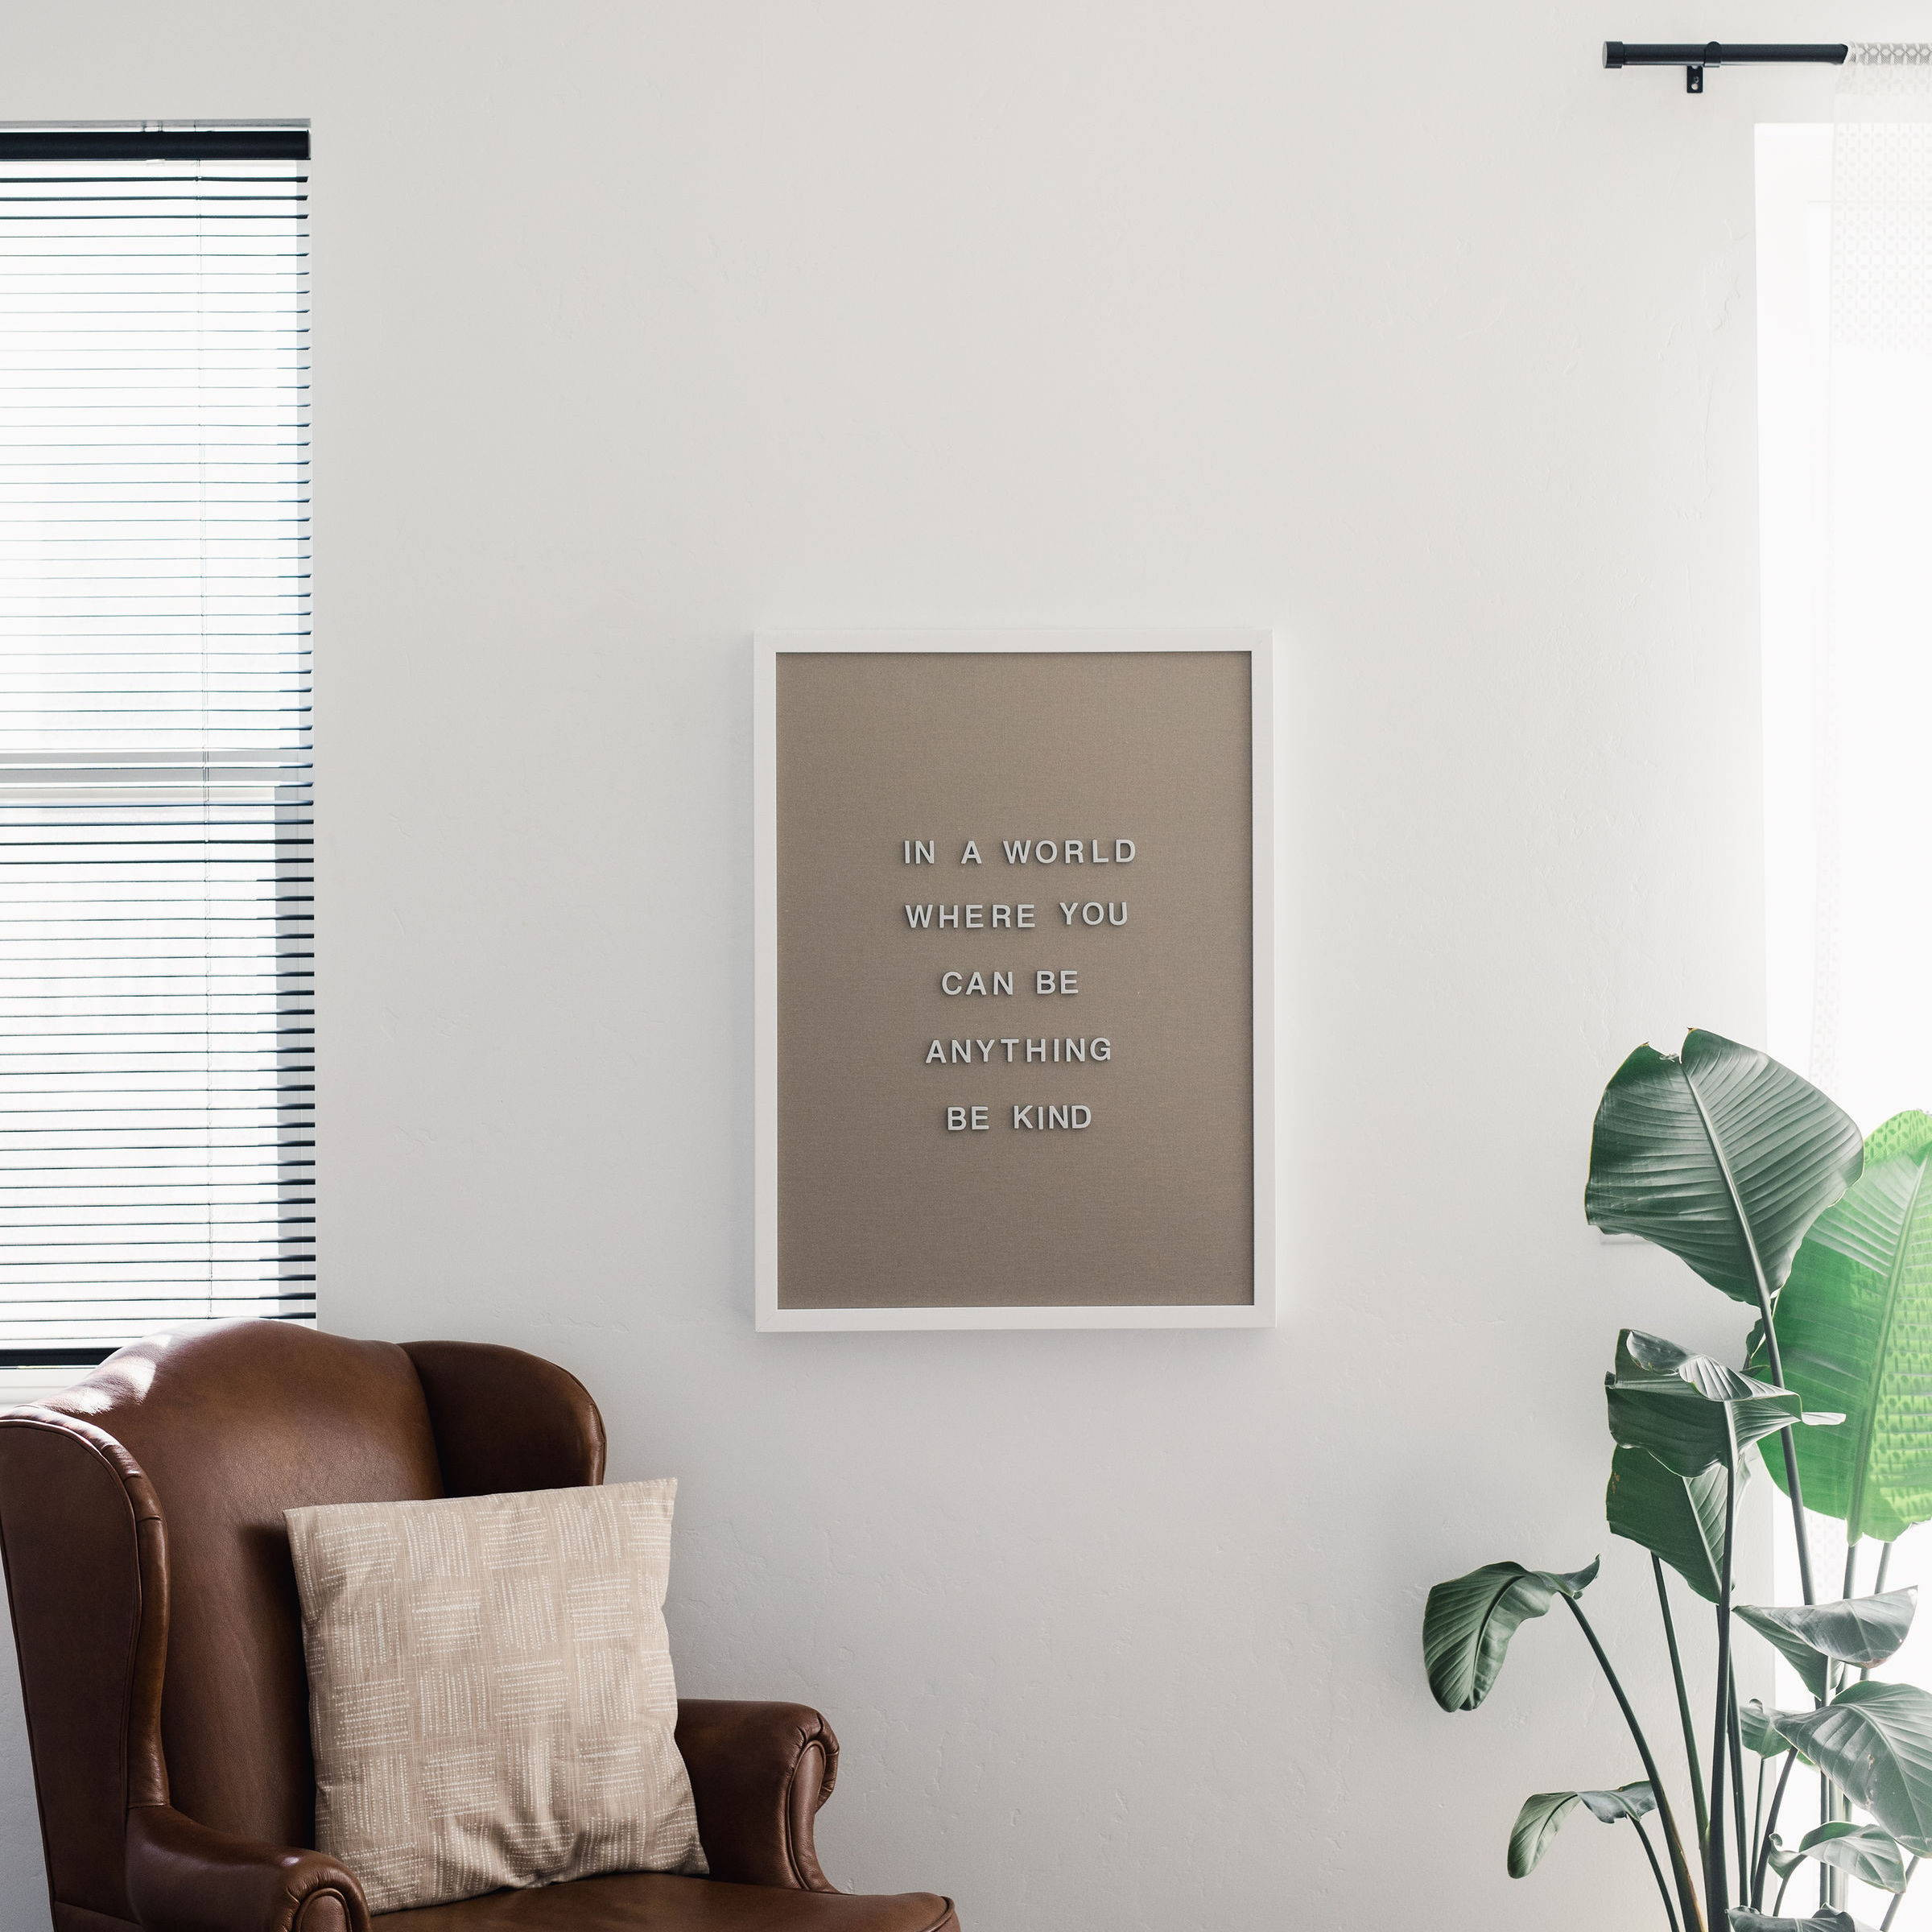 magnetic letter board hanging on wall